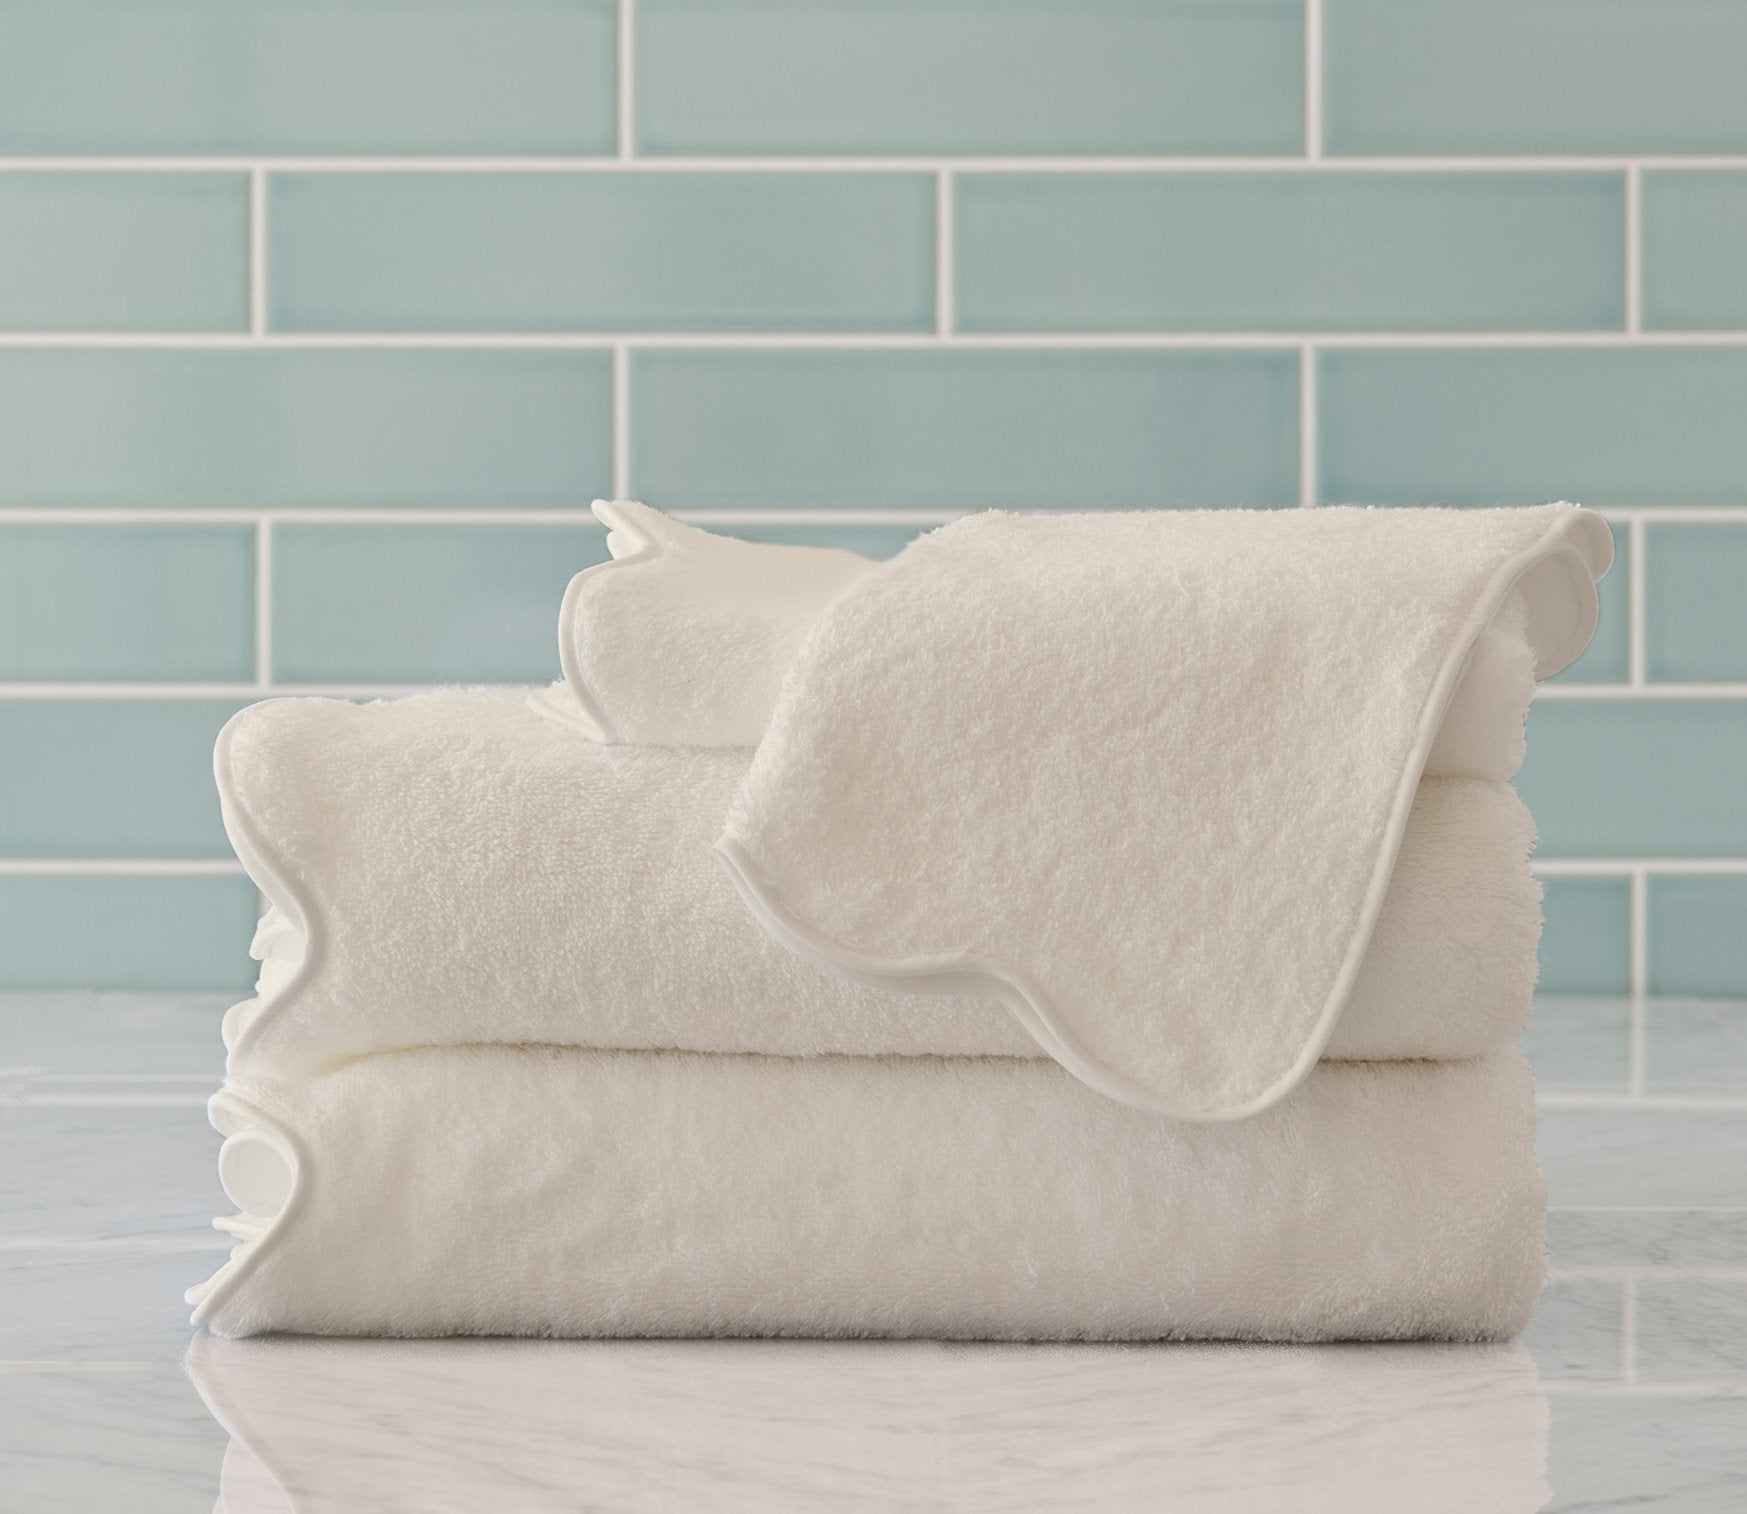 Scallop Ivory Bath Towels Product Image 1